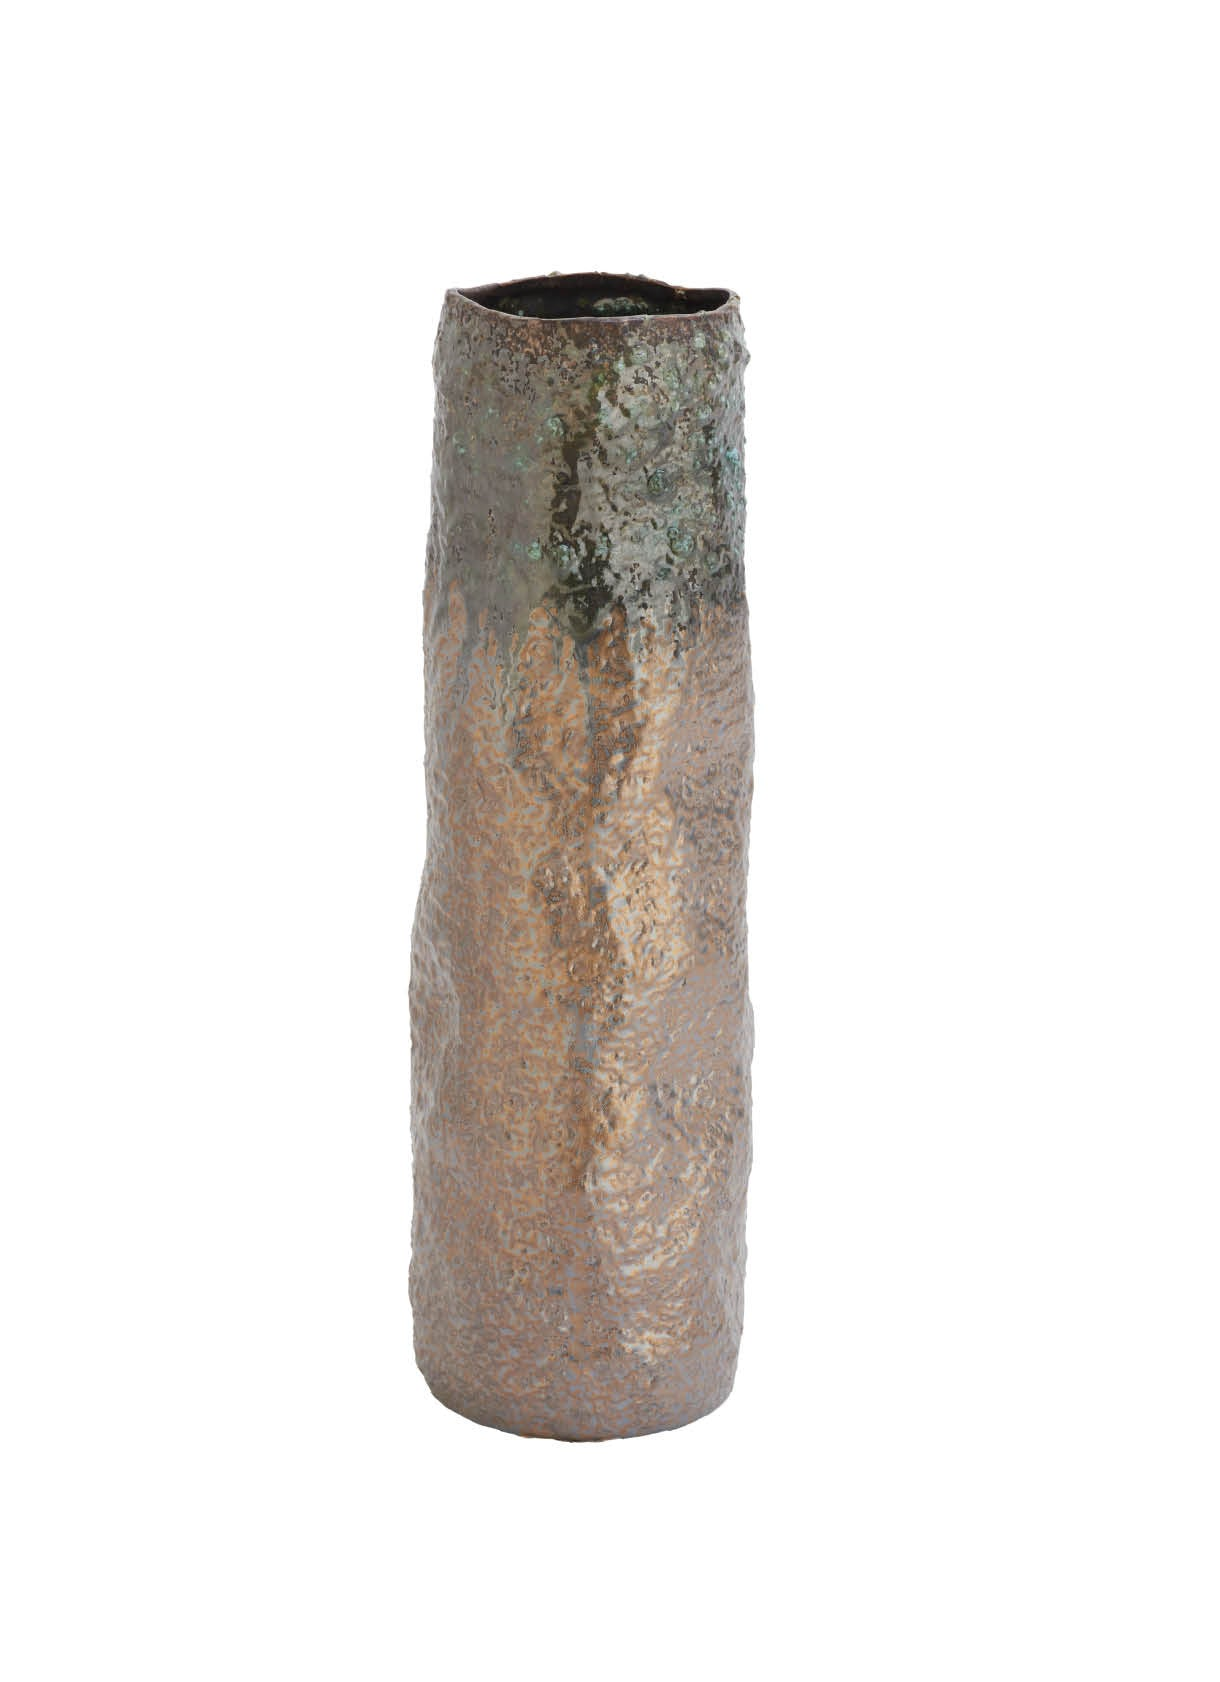 Rustic Ceramic Vases in 2 Styles